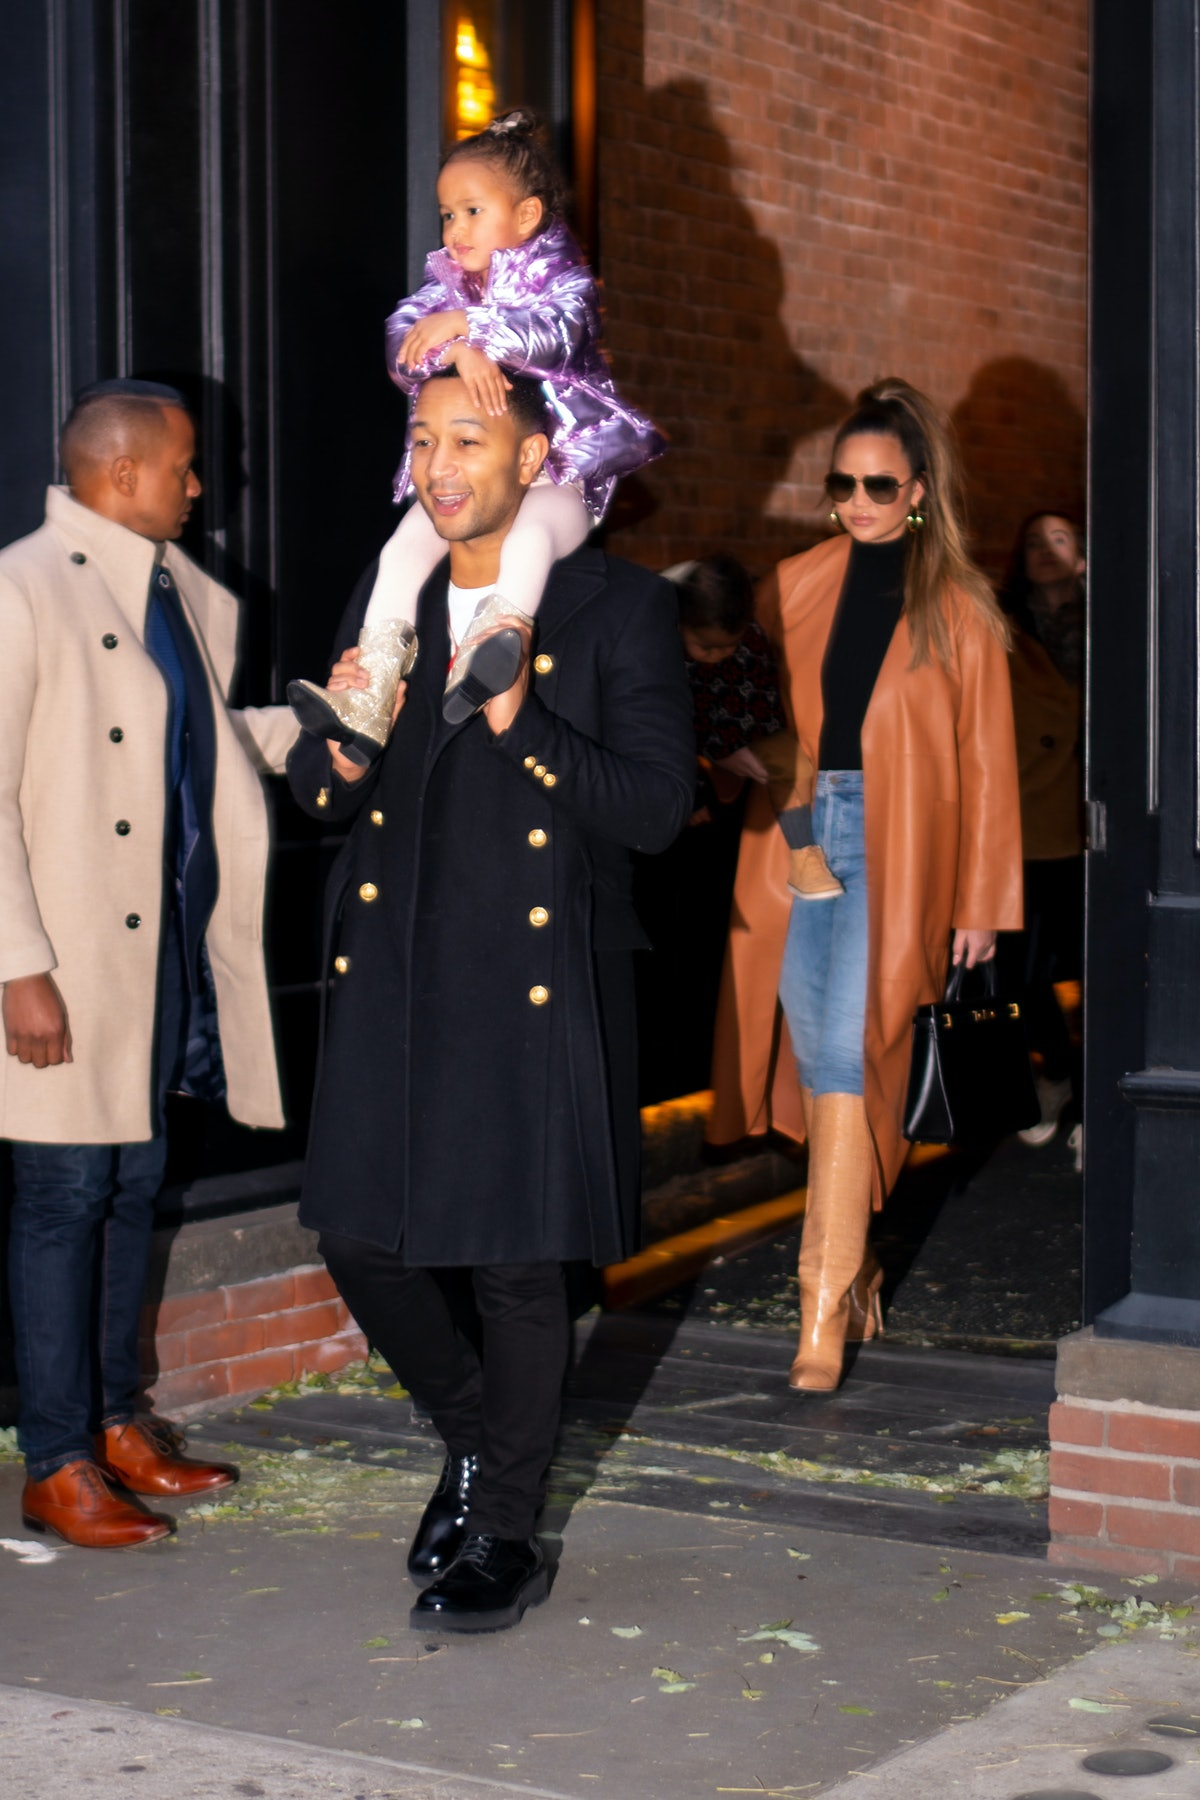 Chrissy Teigen and John Legend step out with their daughter, Luna.